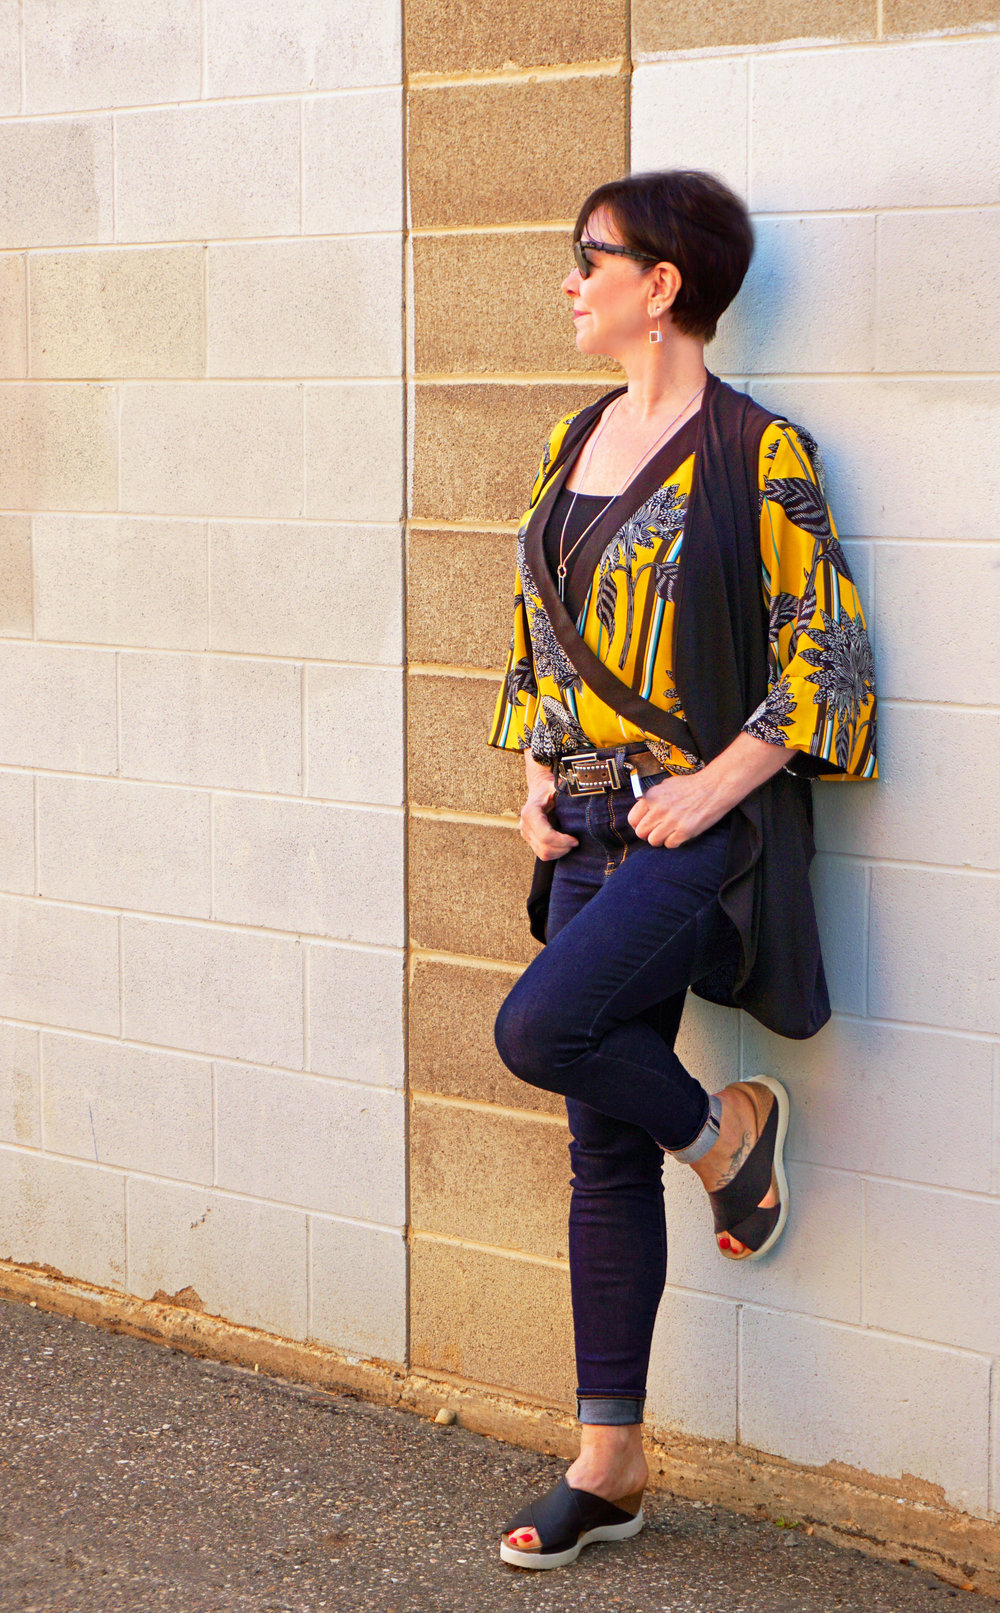 With this look, Colleen has added the Class Act vest from Sympli to tone down the vibrant yellow blouse.